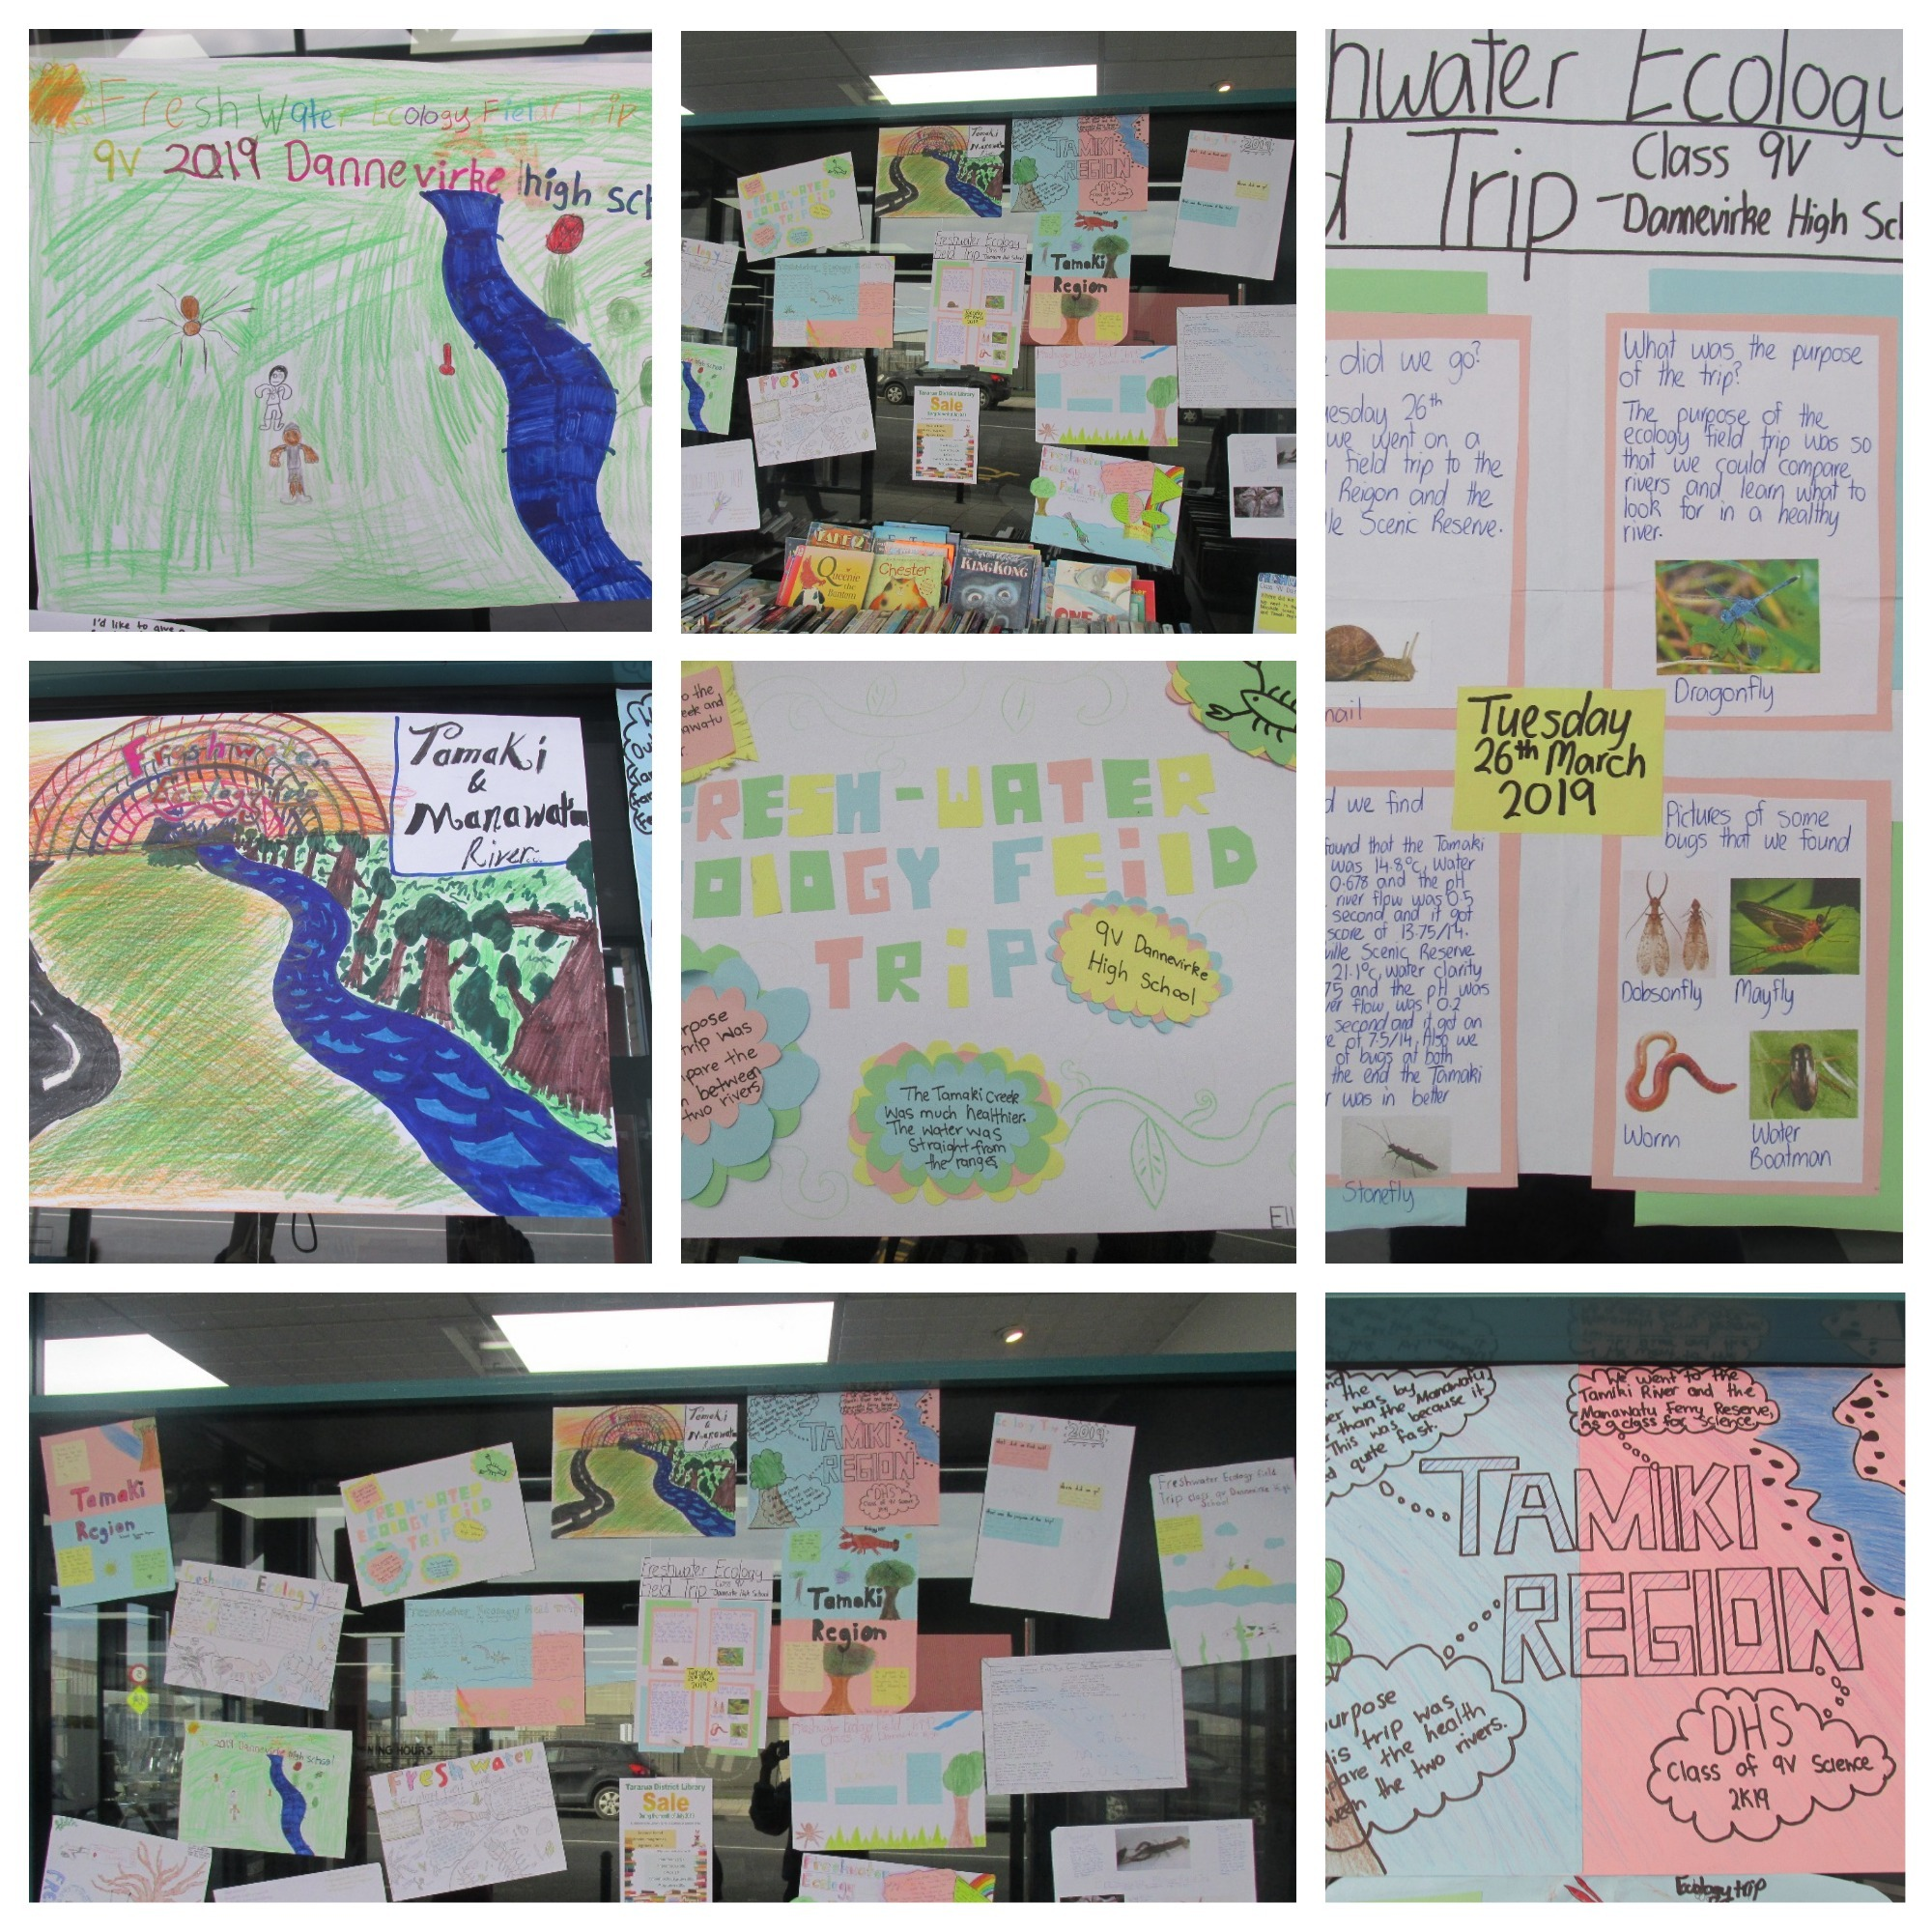 - Students were fully involved in converting their scientific knowledge into communication that will benefit their peers and wider community. Their work on our freshwater stream was featured in their April High school newsletter, whilst a larger display was created for the Tararua district library in the month of July.